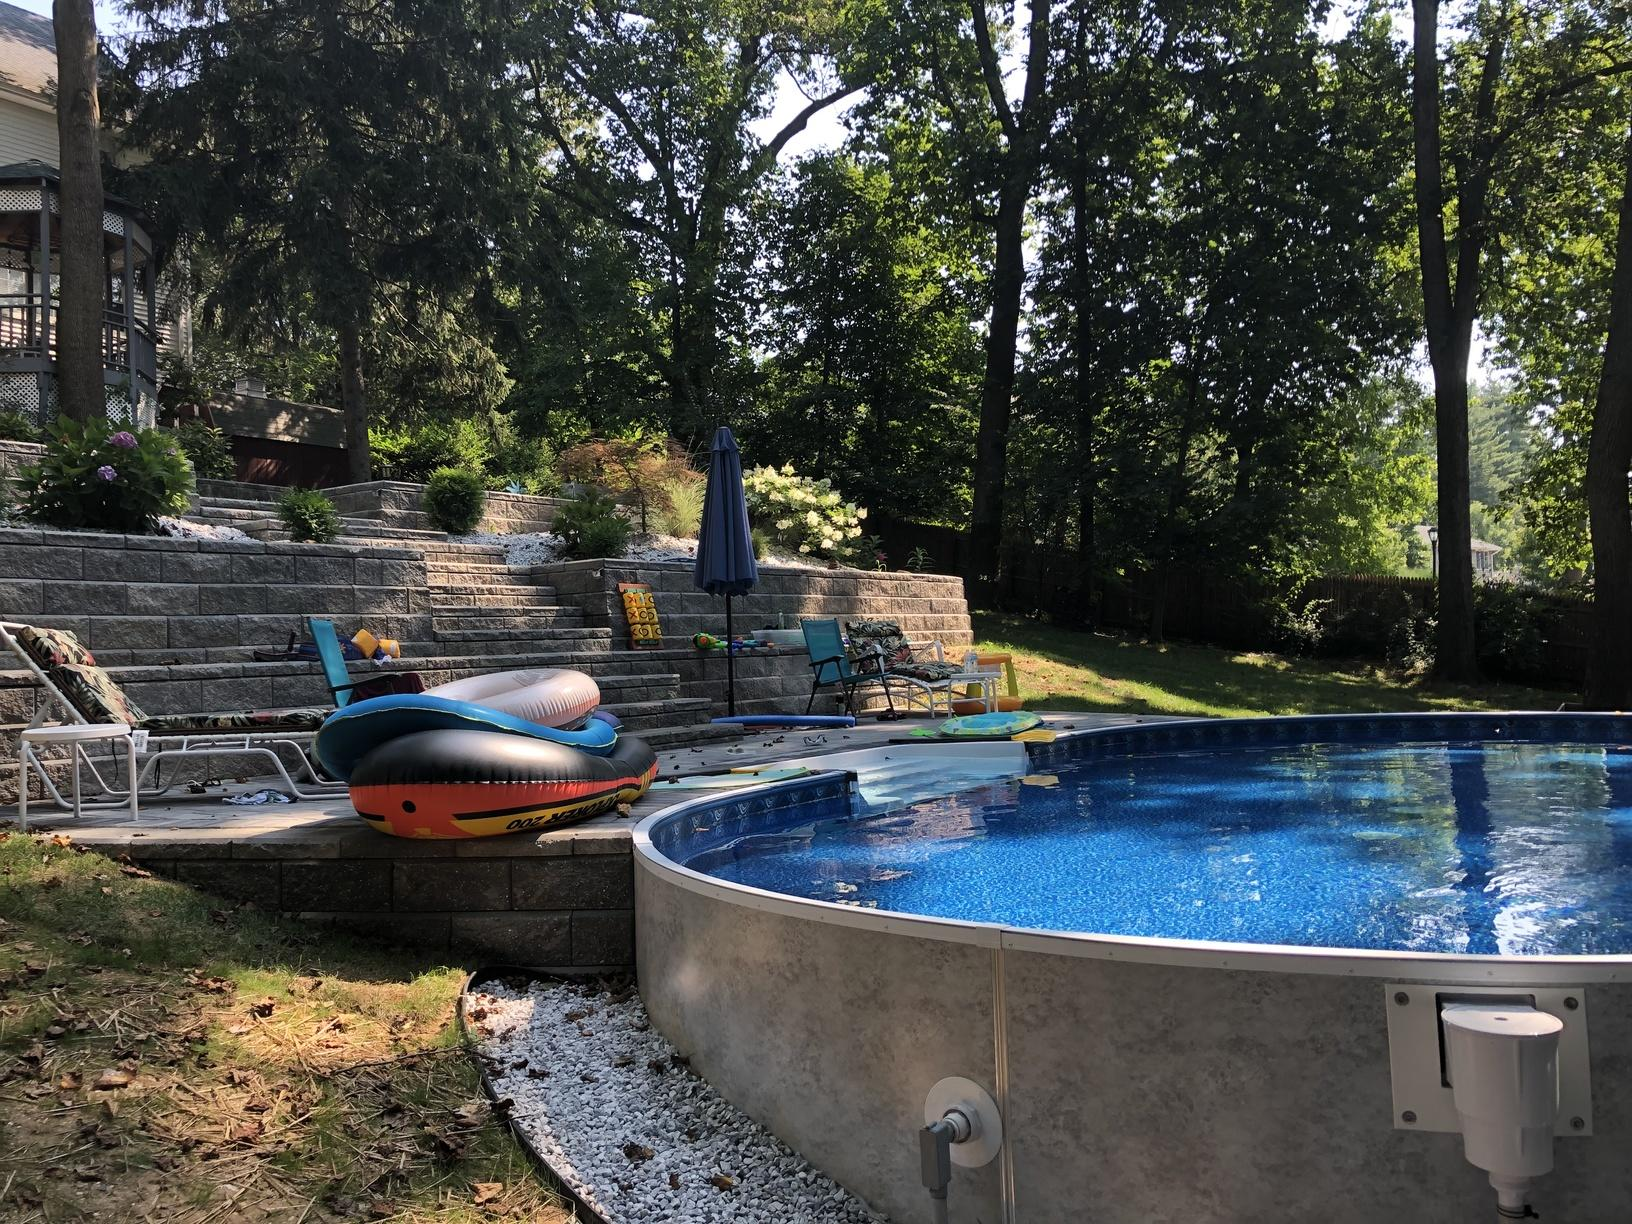 On Ground Radiant Pool Installation in Middletown, NJ